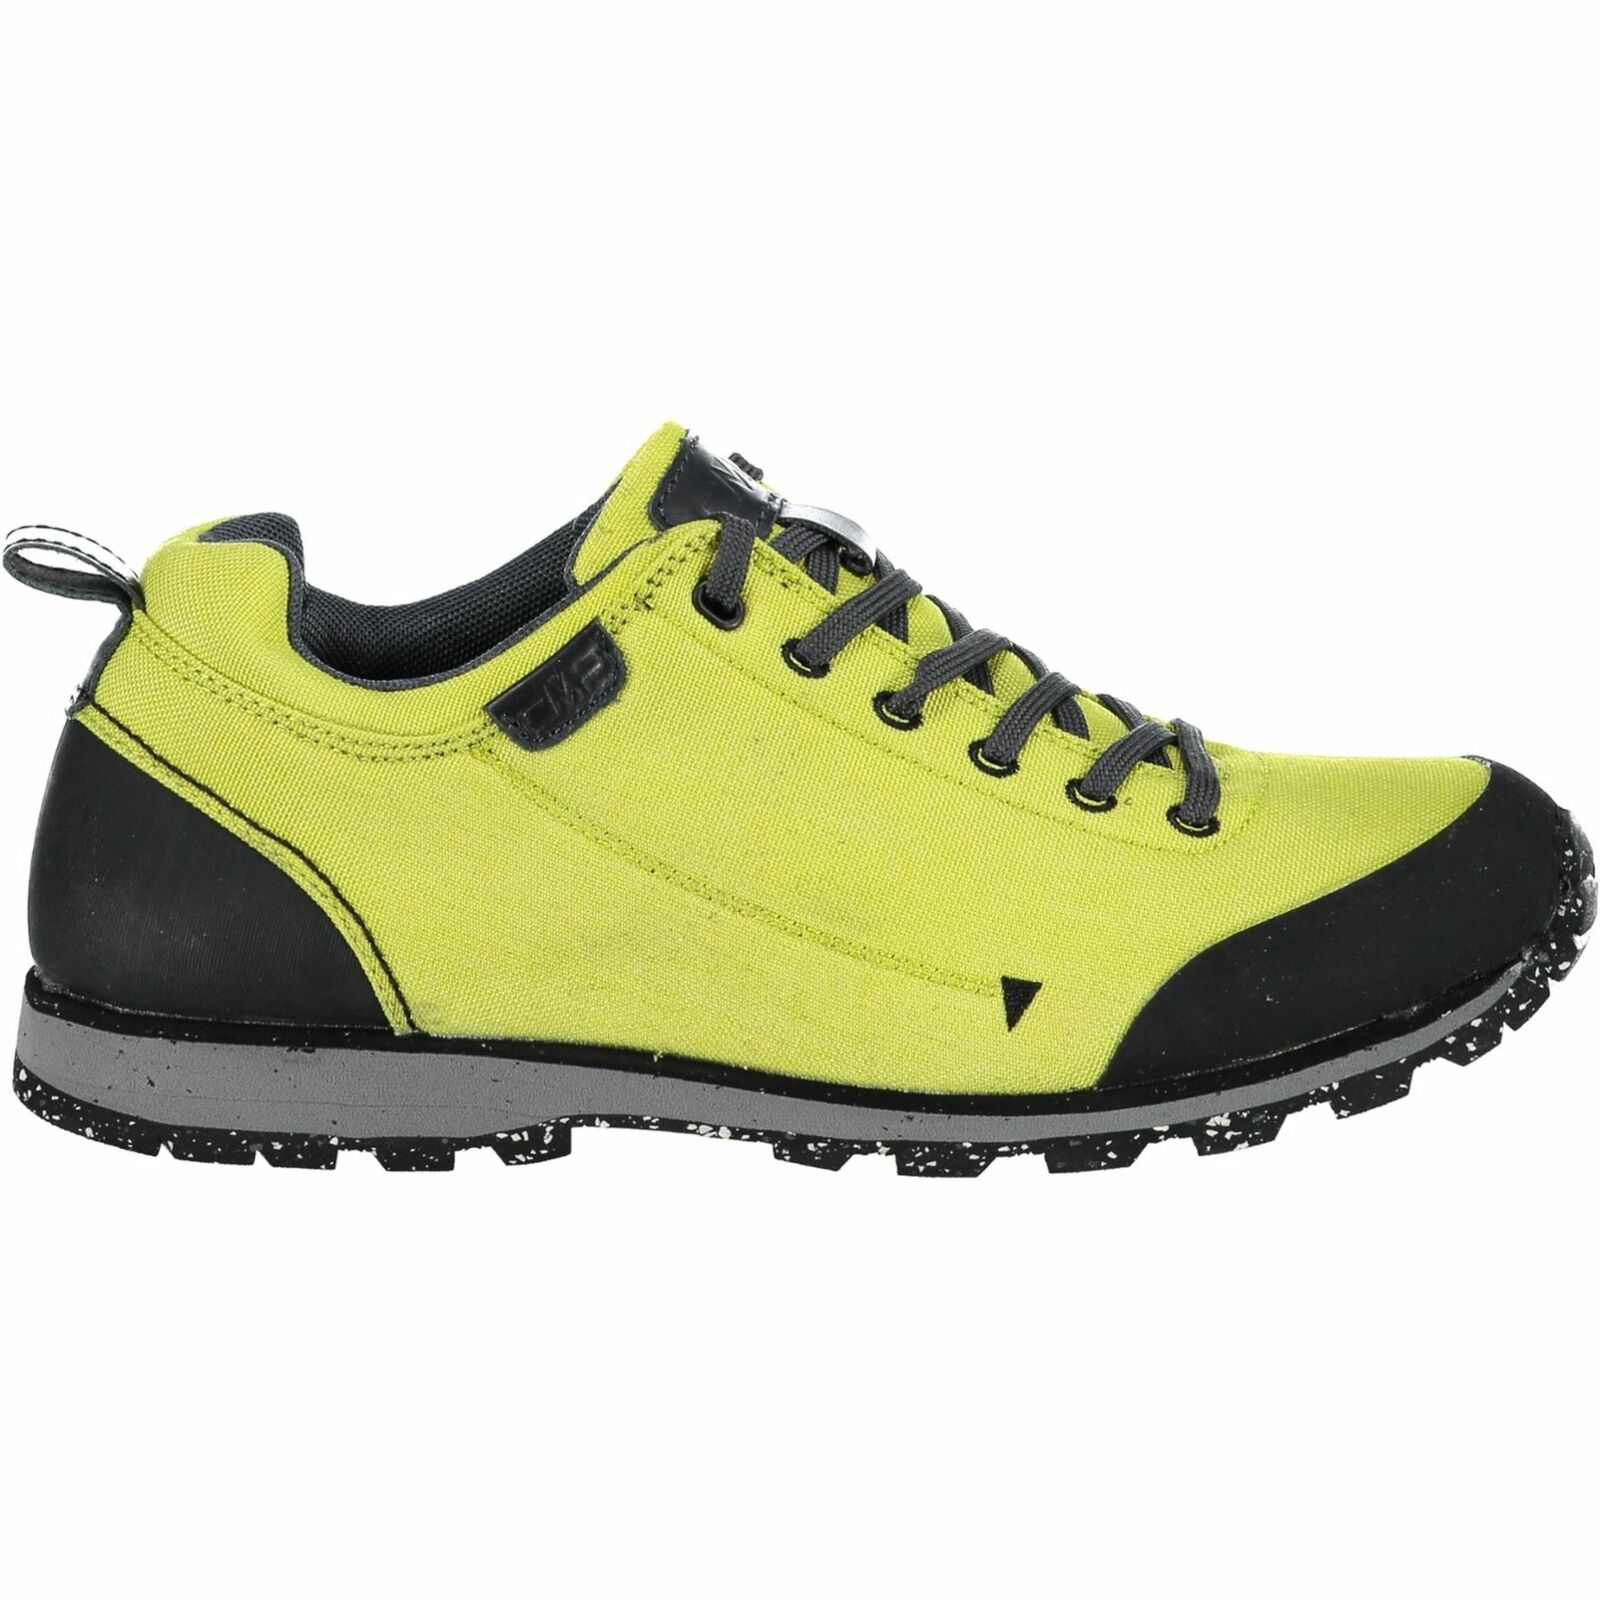 CMP hiking shoes outdoor elettra low cordura hiking shoes  light green  store online